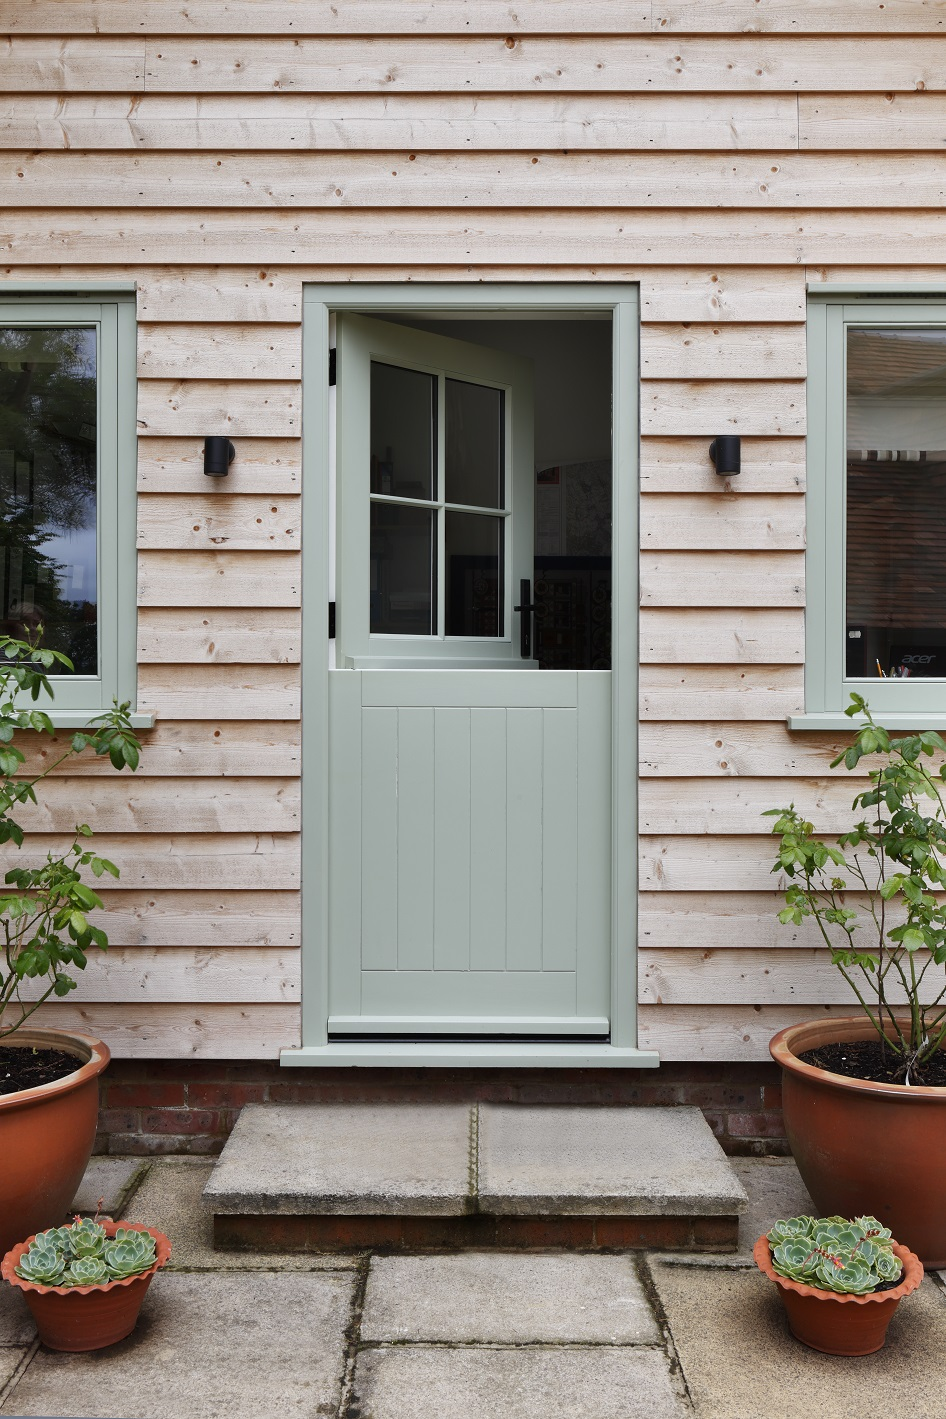 Timber stable door Buckinghamshire. RJP Joinery UK Limited & Timber stable door Buckinghamshire - RJP Joinery UK Limited